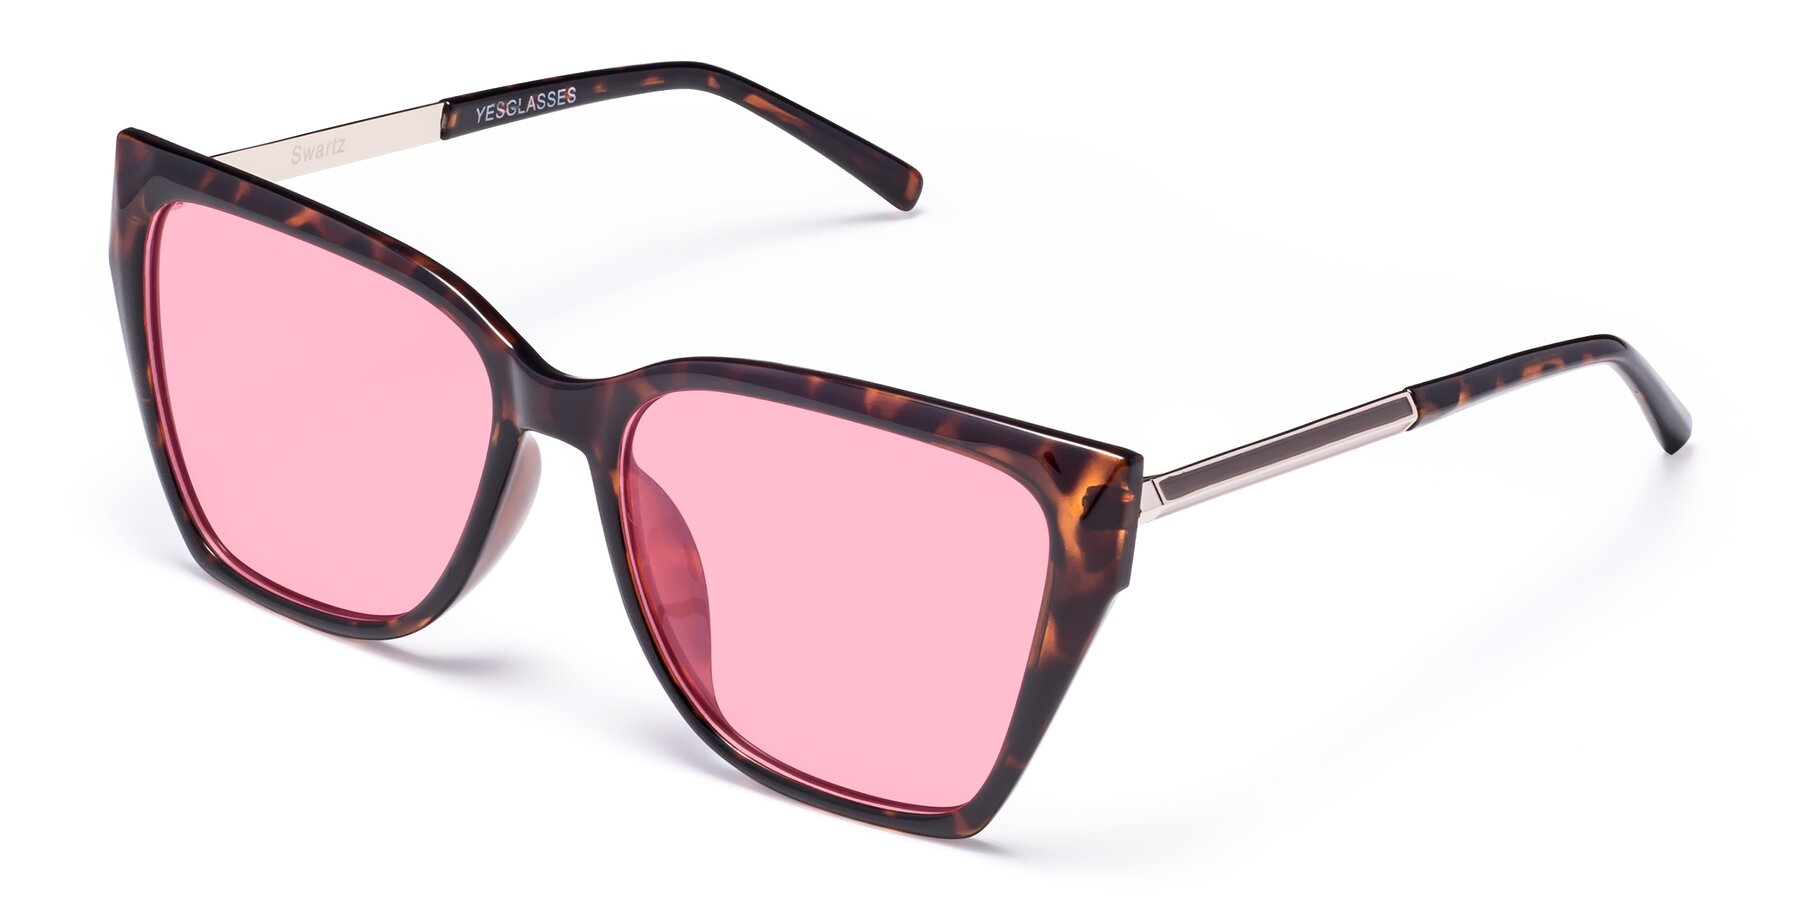 Angle of Swartz in Tortoise with Medium Pink Tinted Lenses